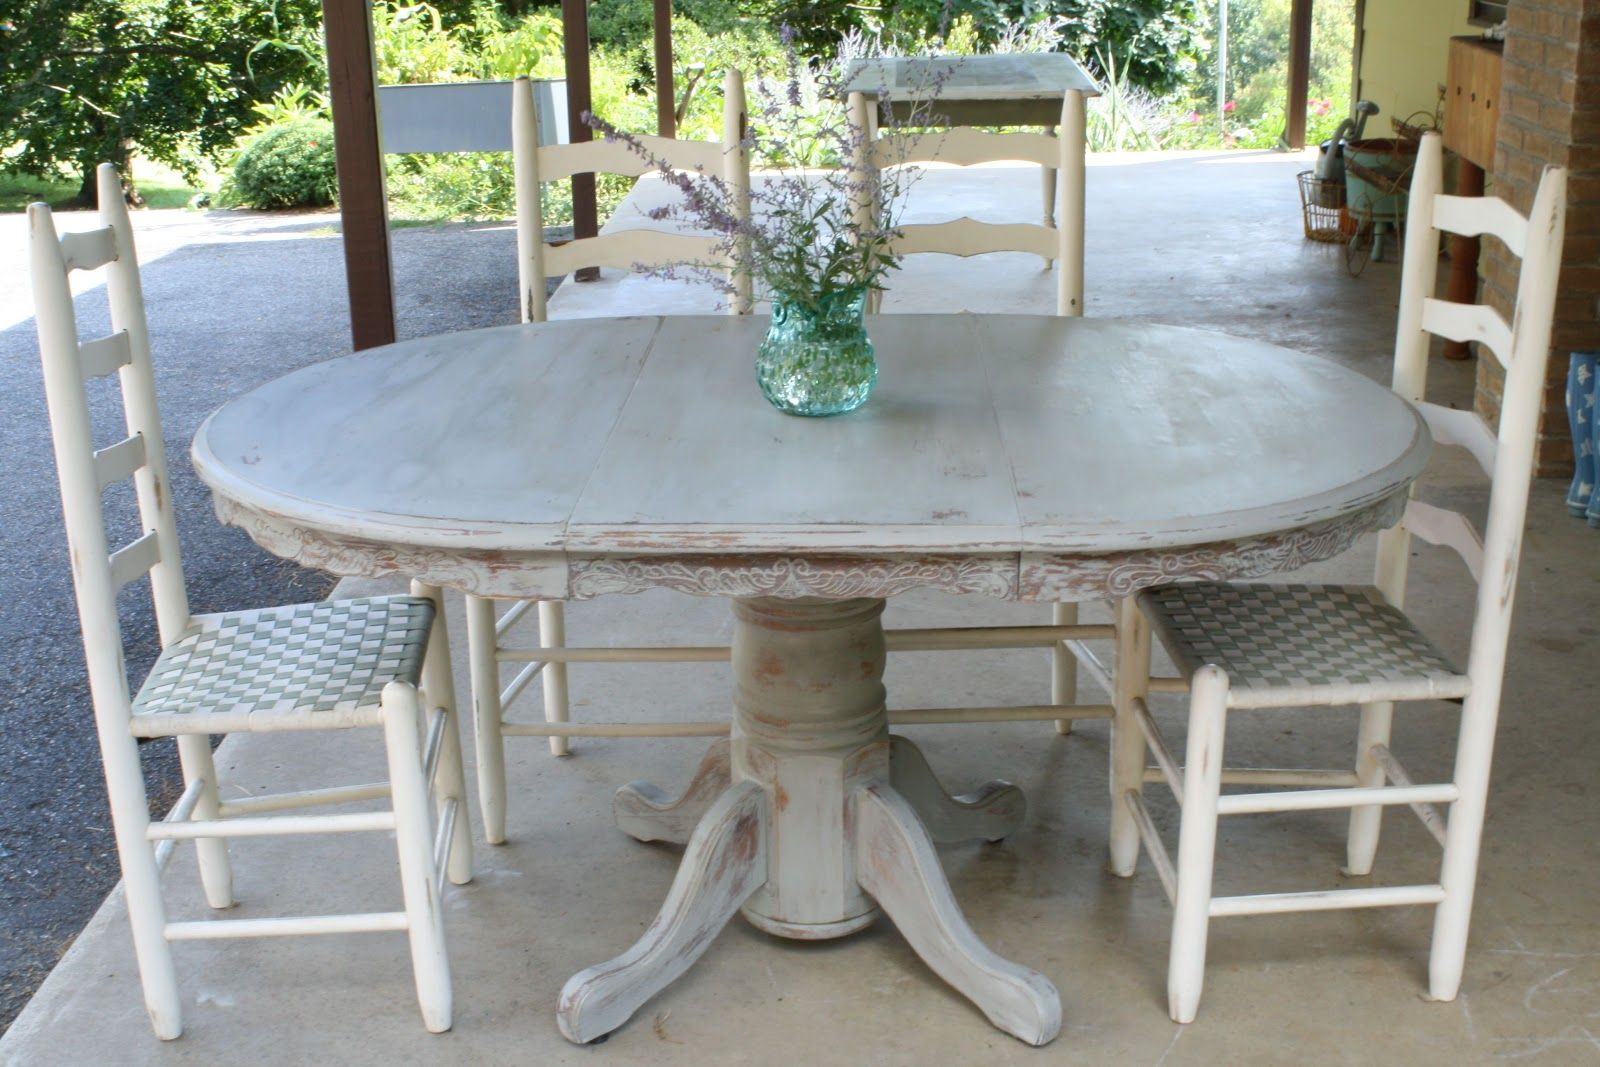 Primitive Proper Weathered Paris Gray Dining Table How Melted Wax Help